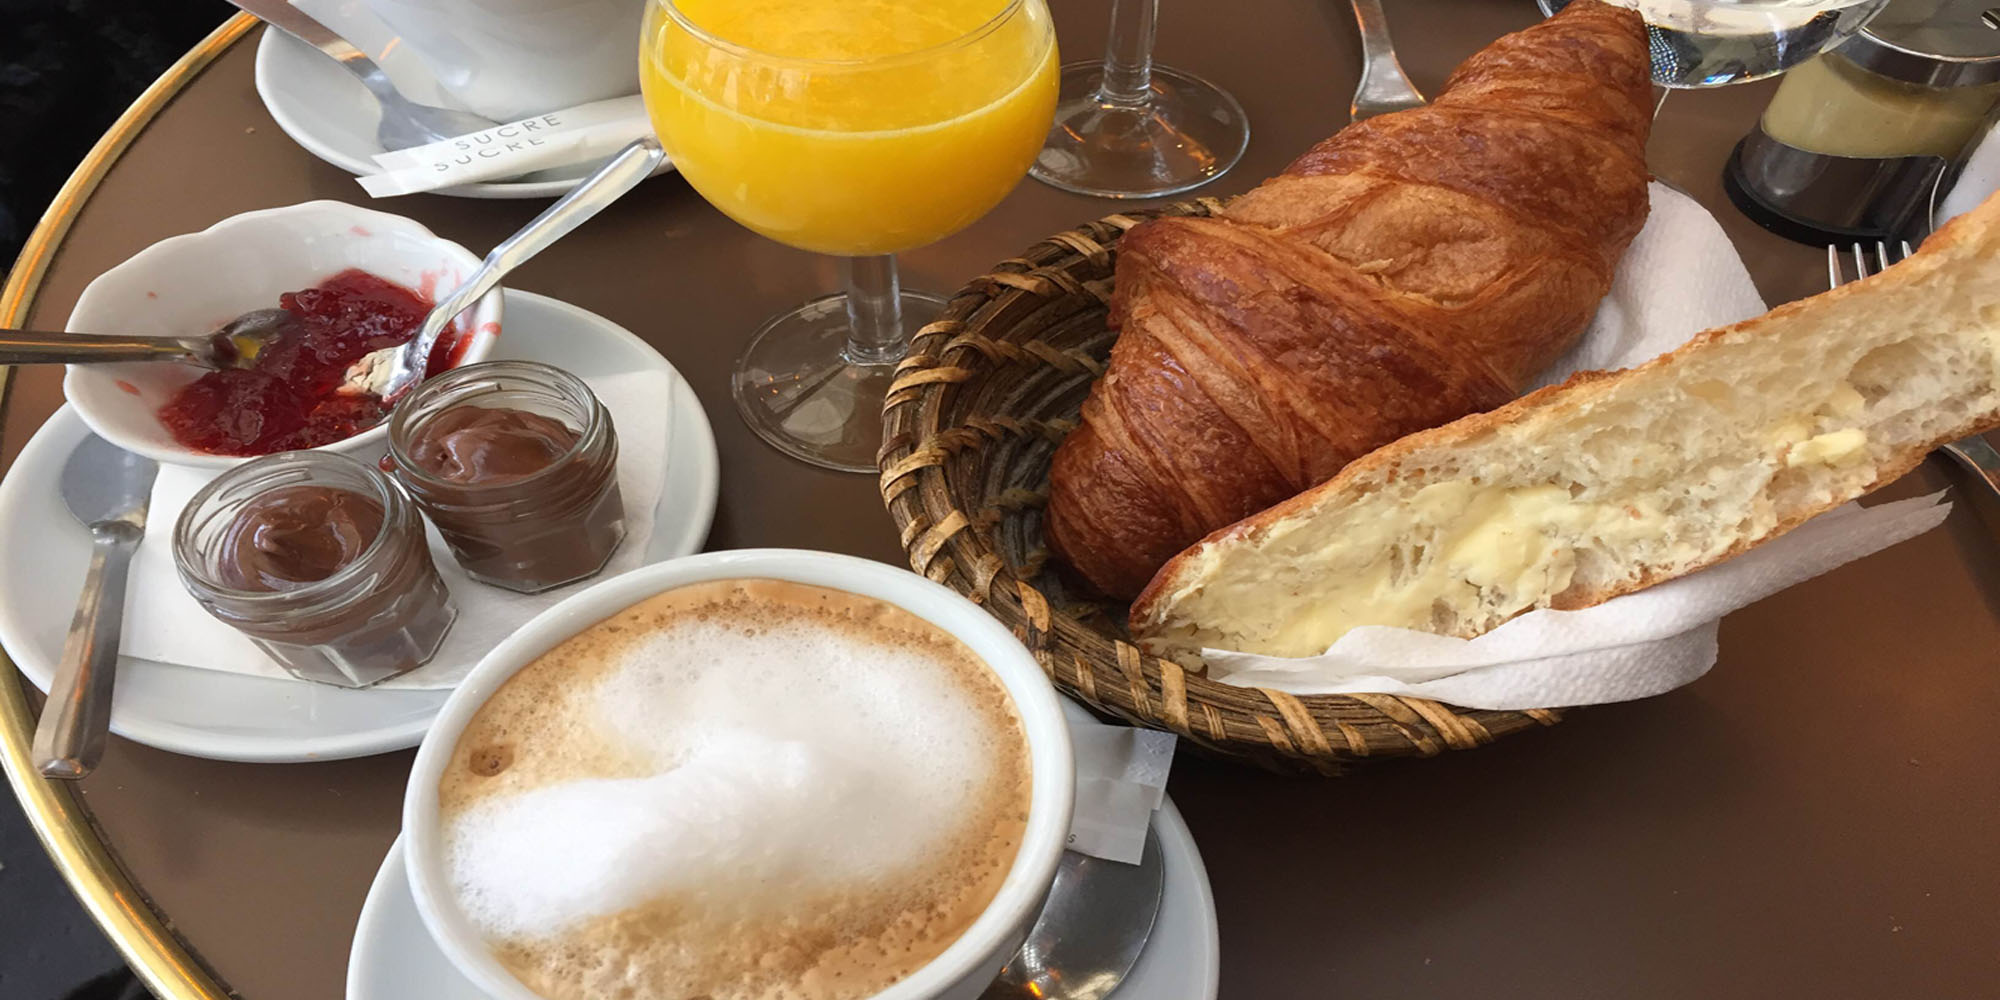 Brunch Le Pierrot (75015 Paris)